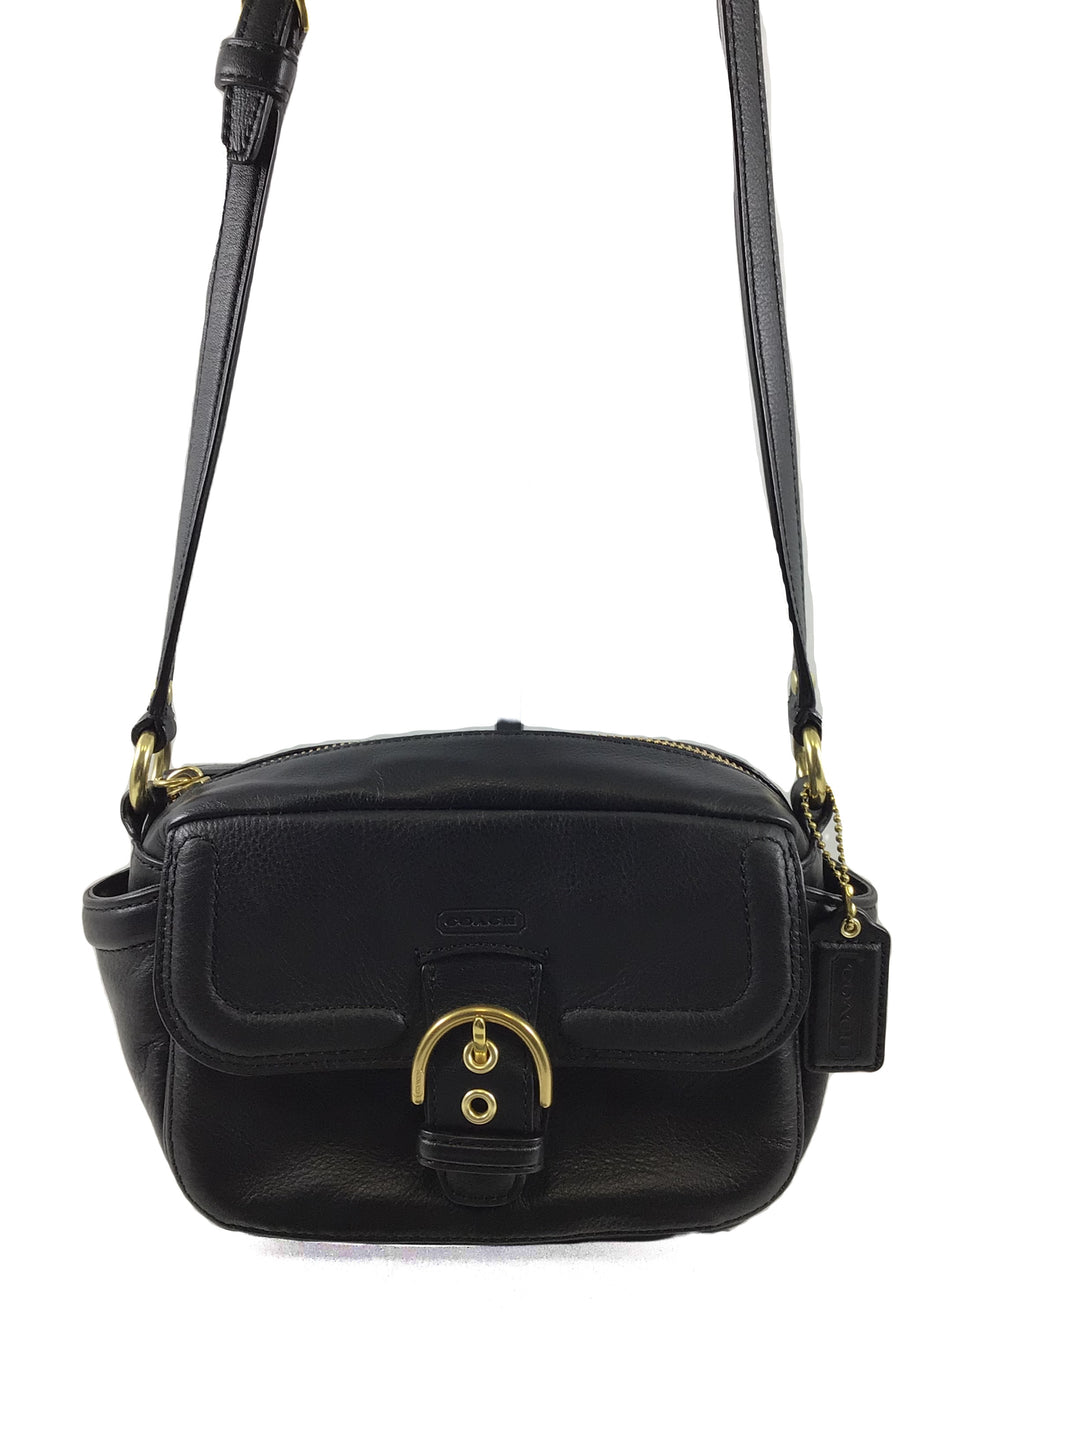 Primary Photo - BRAND: COACH <BR>STYLE: HANDBAG DESIGNER <BR>COLOR: BLACK <BR>SIZE: SMALL <BR>SKU: 213-213106-23691